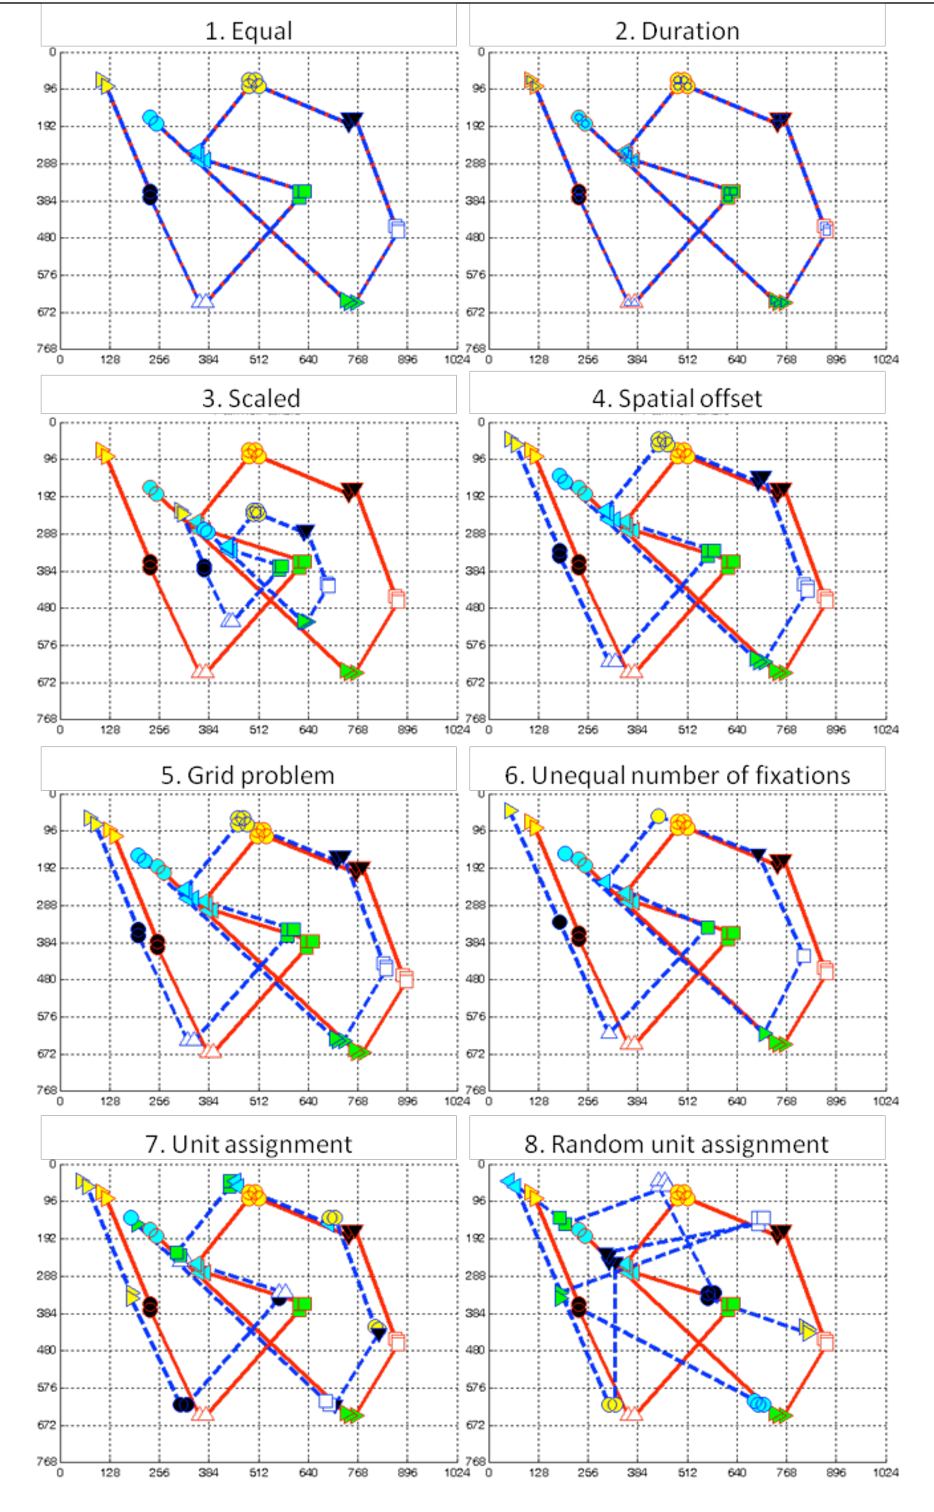 Figure 6. Artificial scanpaths for method comparisons. Red lines and red marker outlines belong to path 1, and blue lines and blue marker outlines belong to path 2. Marker shapes and face colors indicate assignment of corresponding fixations to functional units (1=yellow triangle, 2=black circle, 3=white triangle, 4=green square, 5=blue triangle, 6=yellow circle, 7=black triangle, 8=white square, 9=green triangle, 10=blue circle). Fixation durations are symbol-